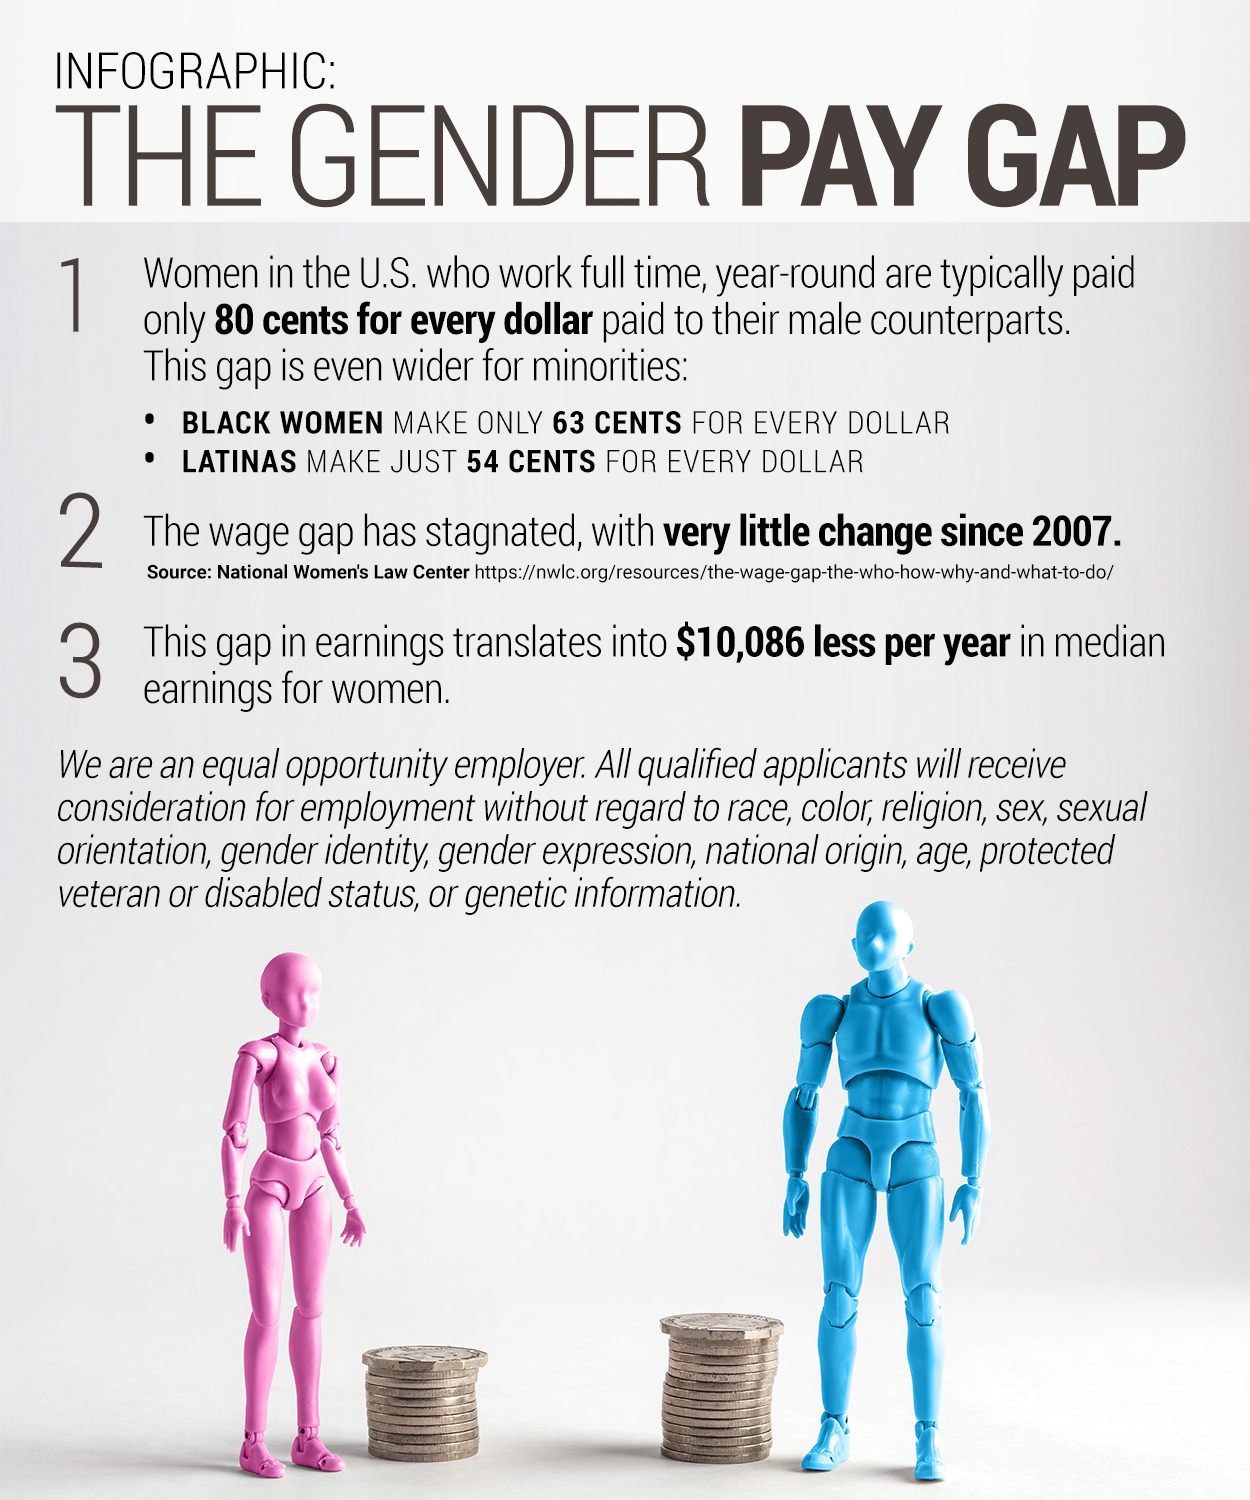 Infographic: The Gender Pay Gap